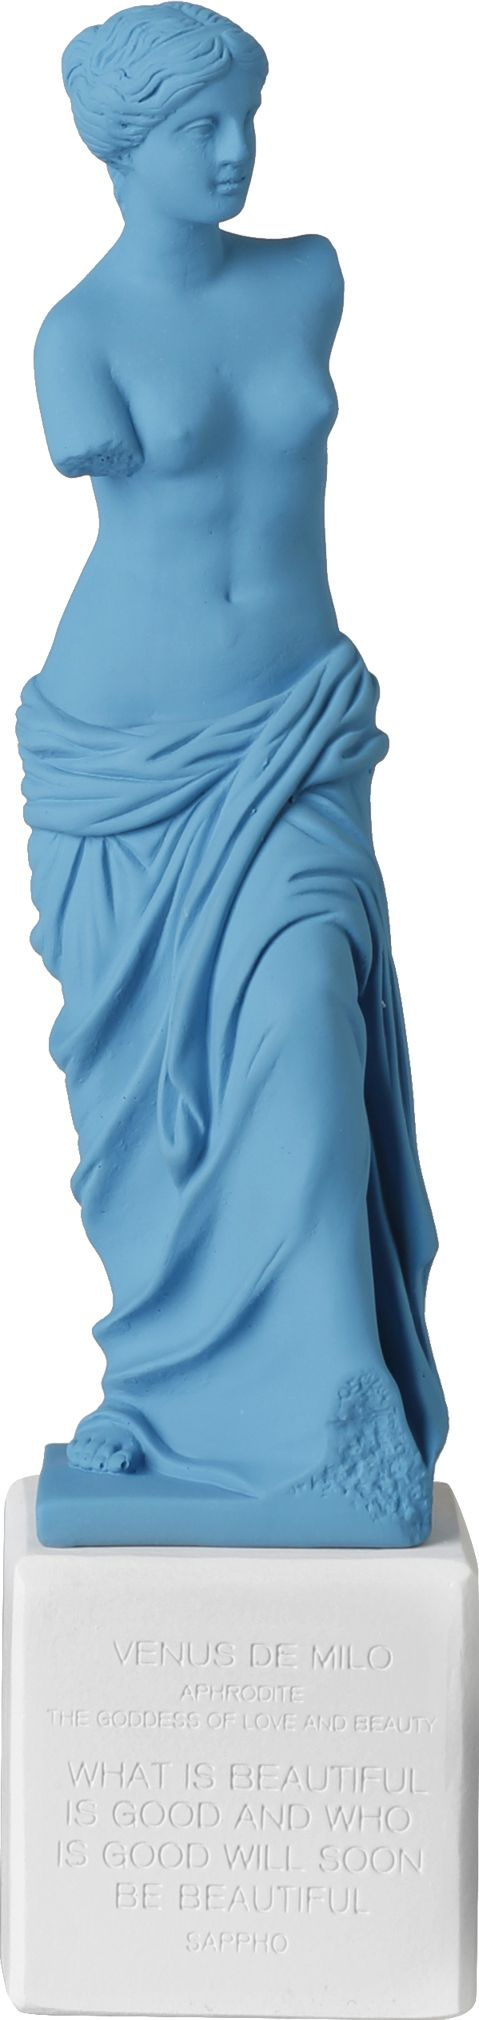 Venus de Milo. Statue. Material 100% Ceramine. Color: Light Blue.